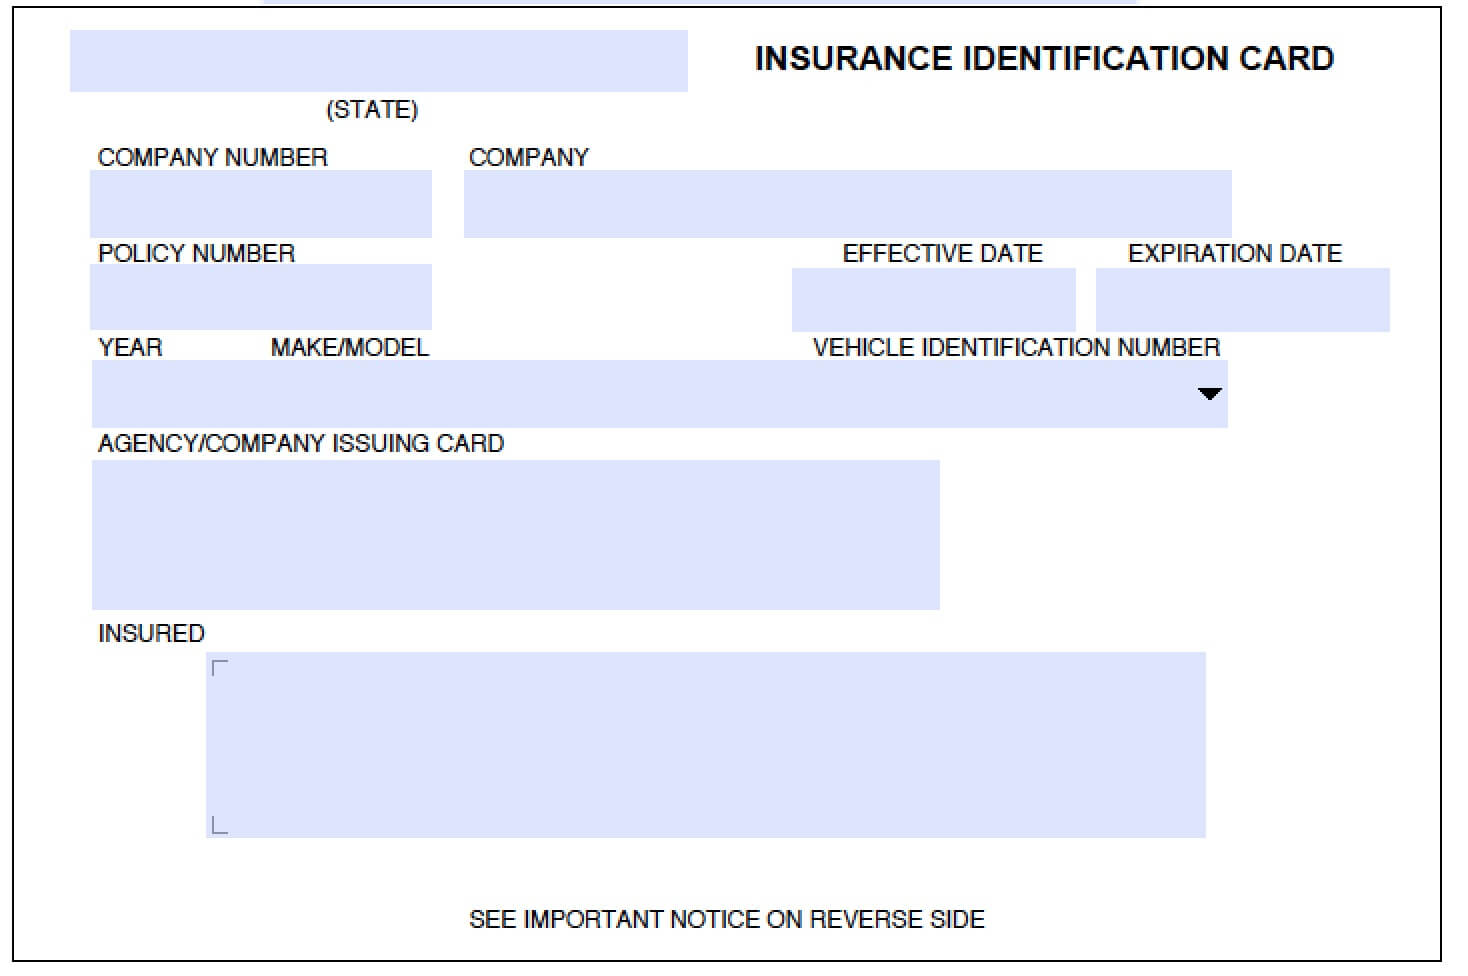 012 Company Car Policy Template Free Auto Insurance Id Card Throughout Car Insurance Card Template Free